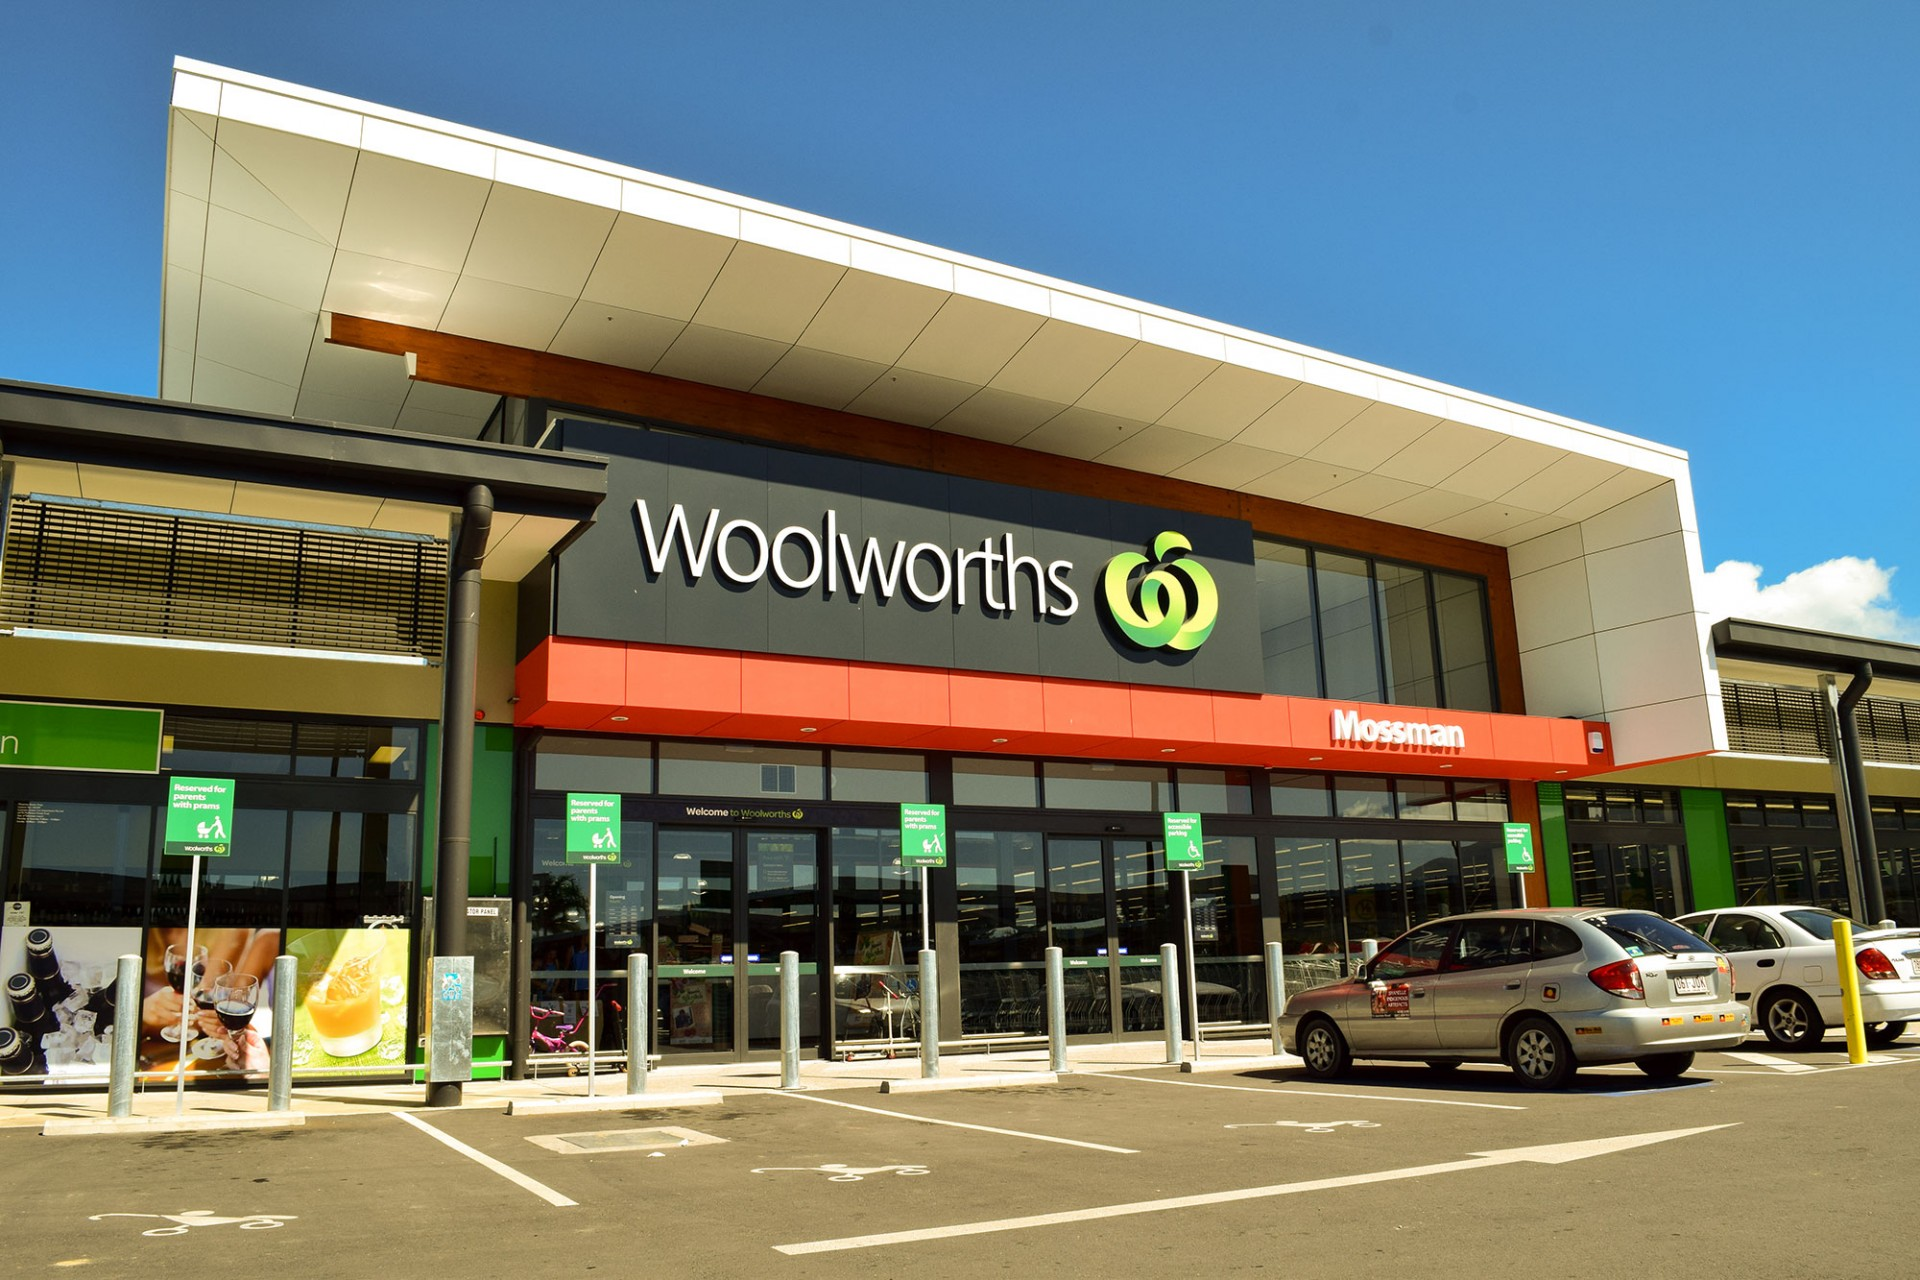 Woolworths决意将汽油业务单独IPO或出售